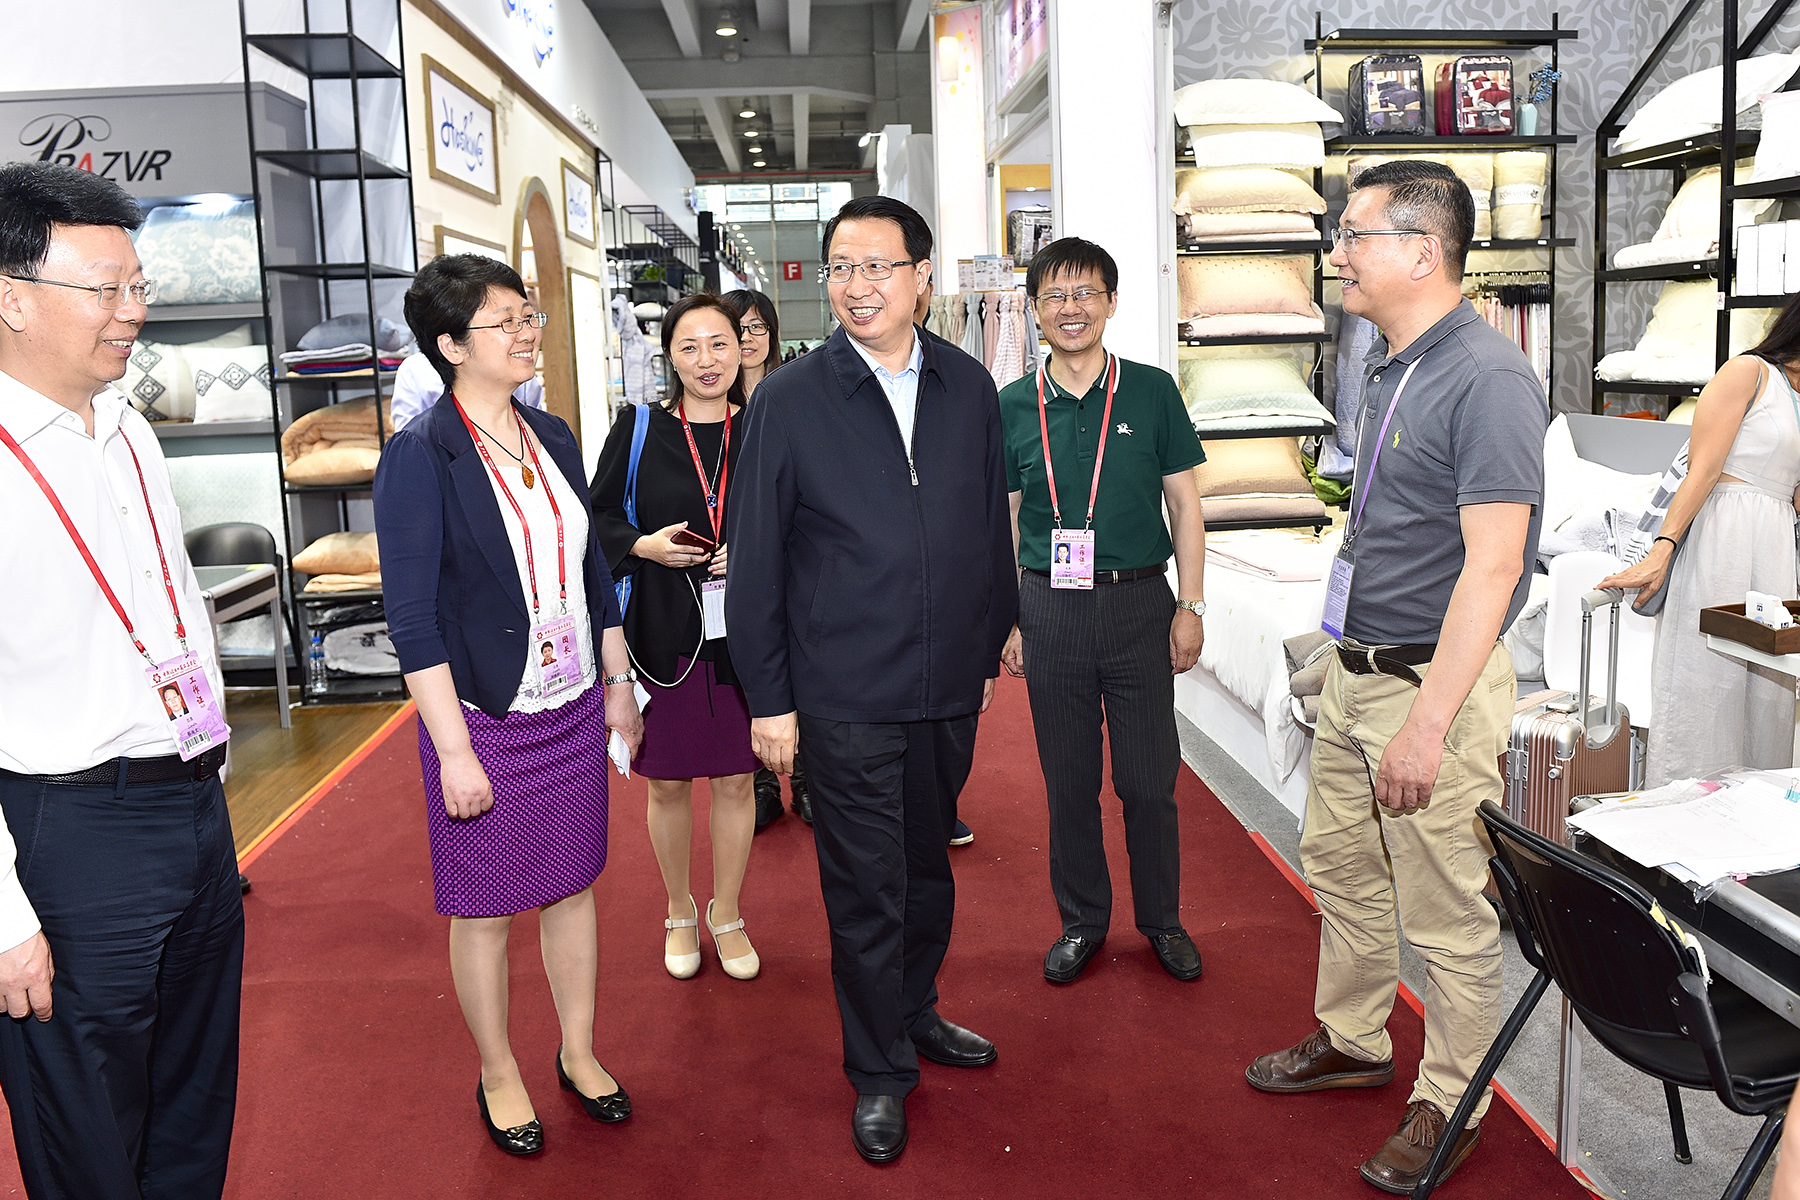 The Deputy governor of Jiangsu visited KOSMOS in Canton Fair